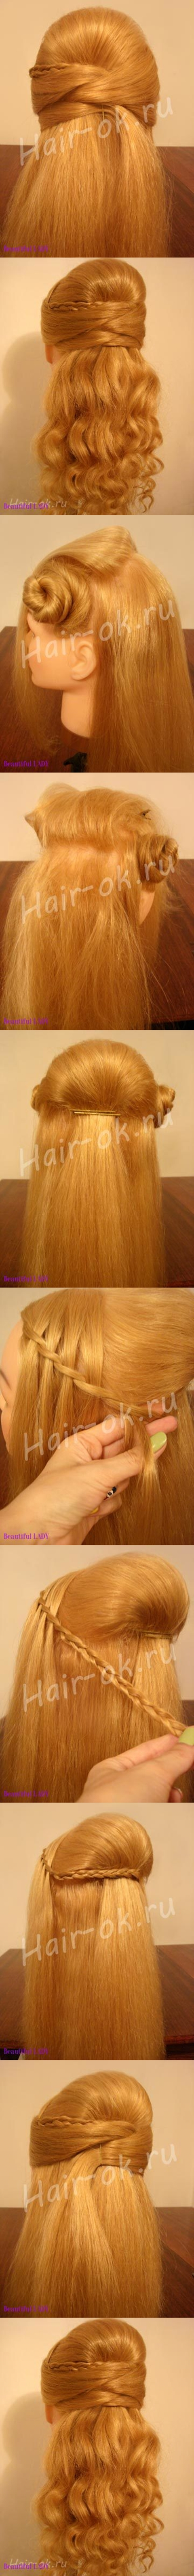 lady hairstyle tutorial